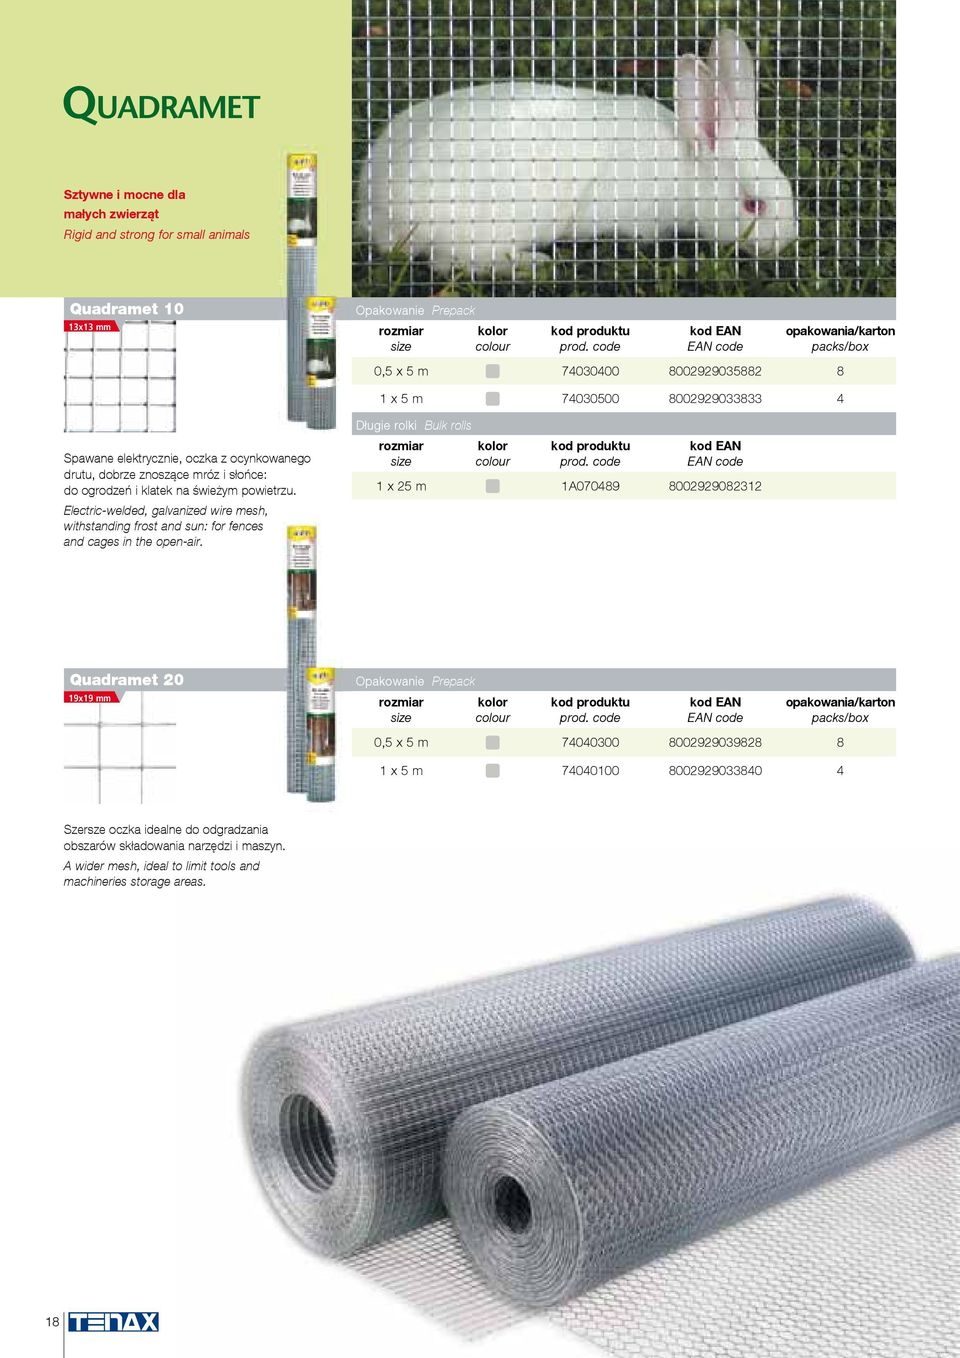 Electric-welded, galvanized wire mesh, withstanding frost and sun: for fences and cages in the open-air.